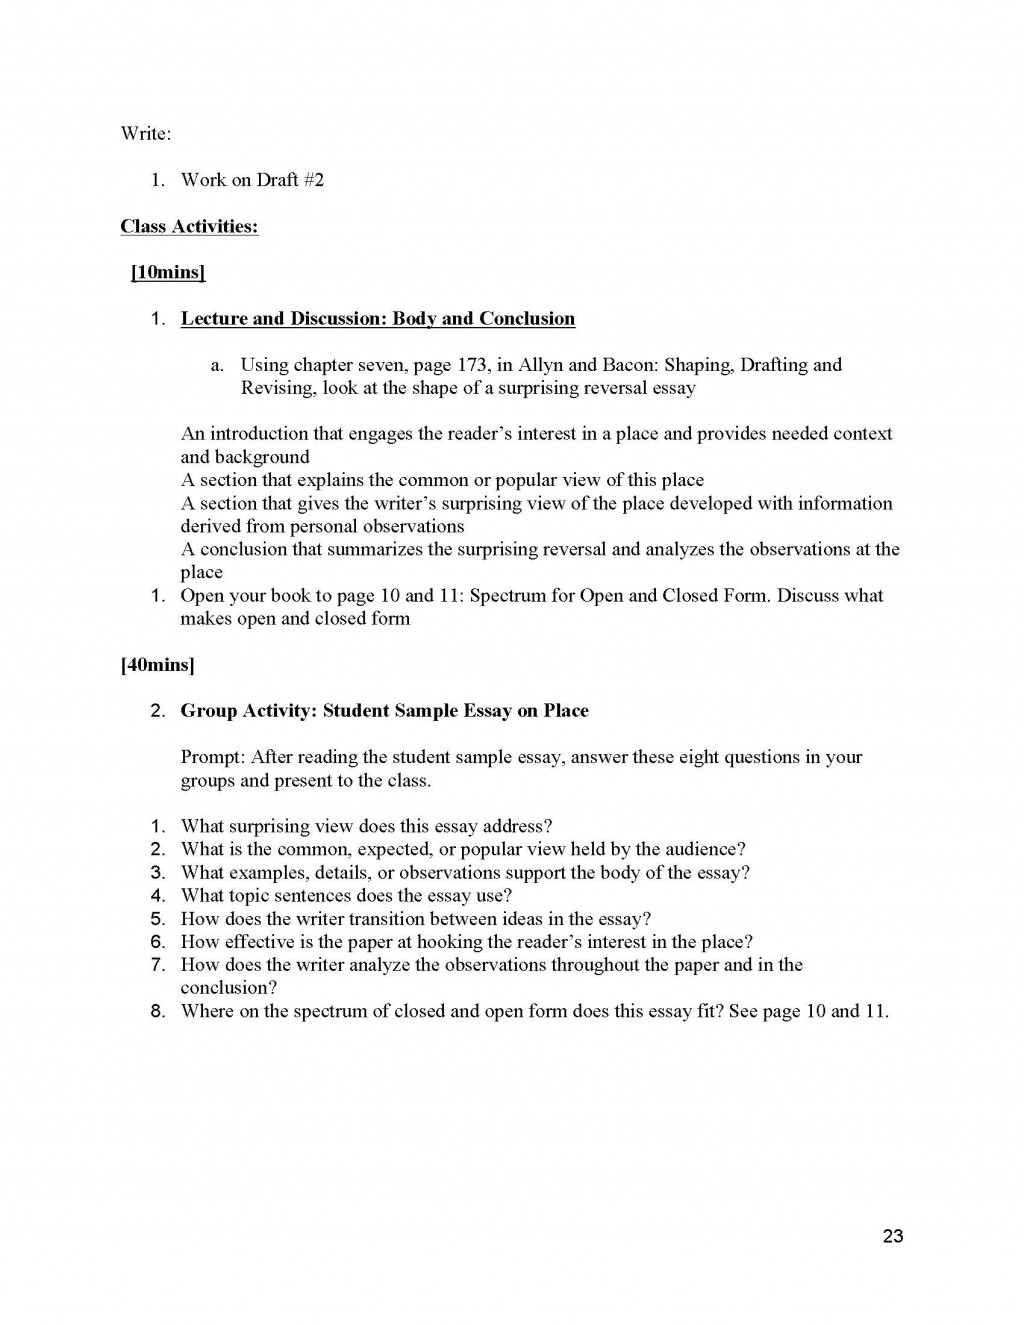 024 Informative Essay Topics Unit 2 Plans Instructor Copy Page 23 Remarkable Prompt 4th Grade Prompts For High School Expository College Students Large